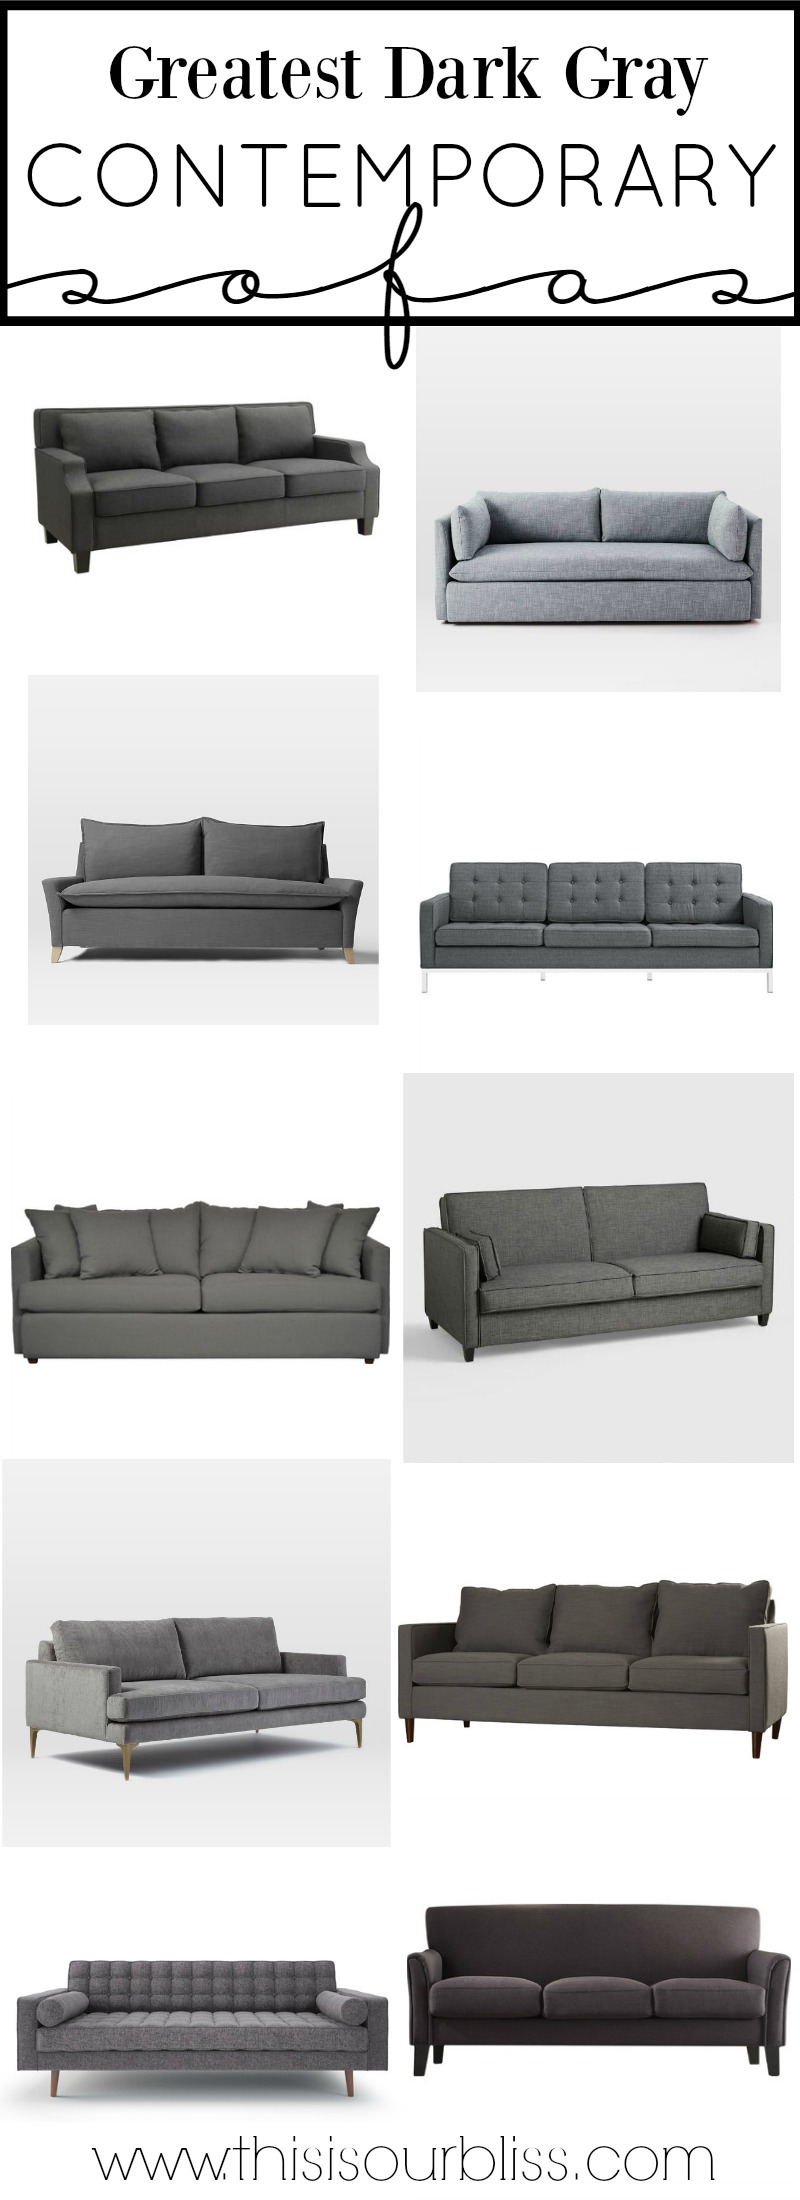 The Greatest Dark Gray Contemporary Sofa Round-up + How to Style a Sofa 2 Different Ways | This is our Bliss